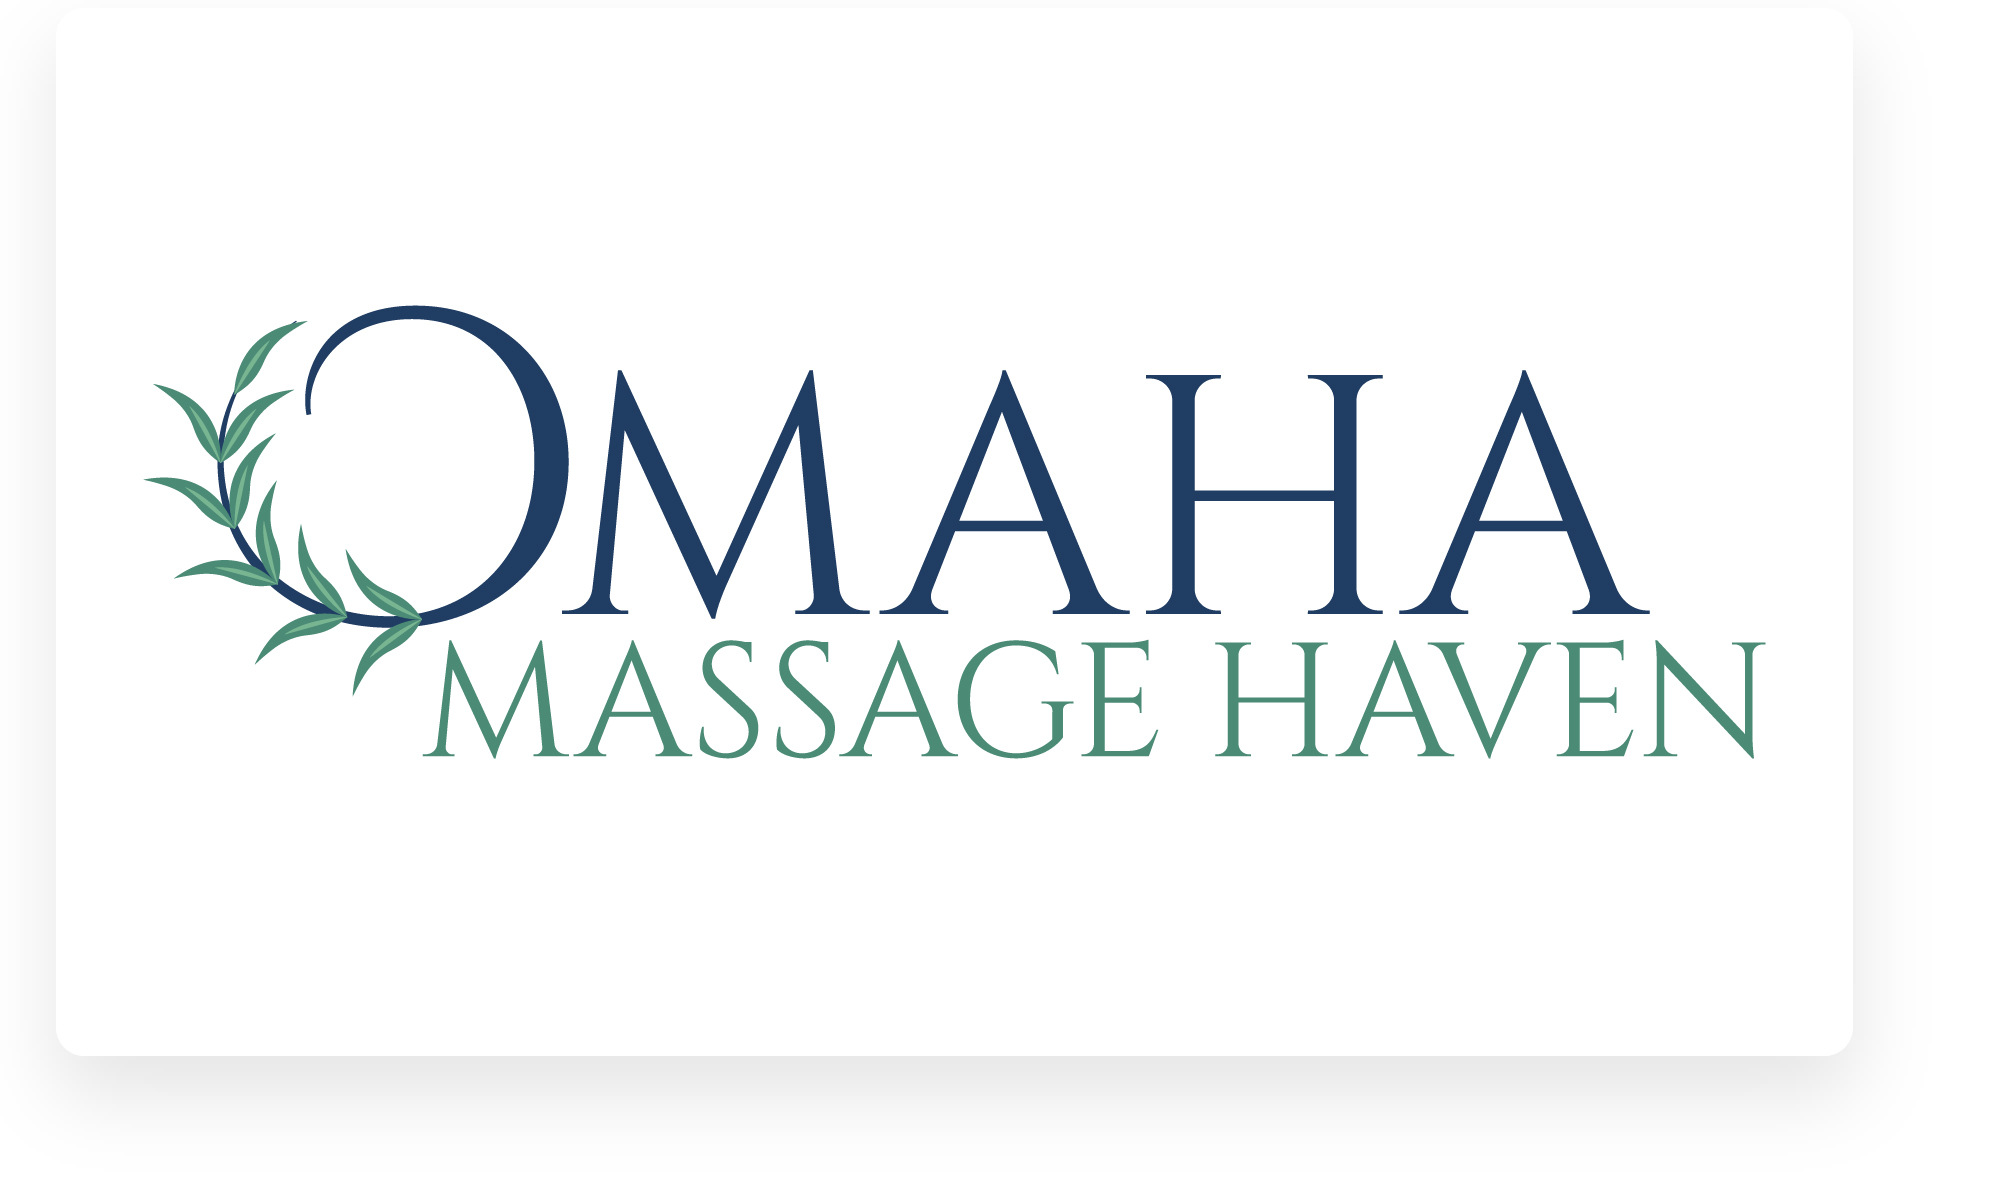 Omaha_Massage_Haven.jpg